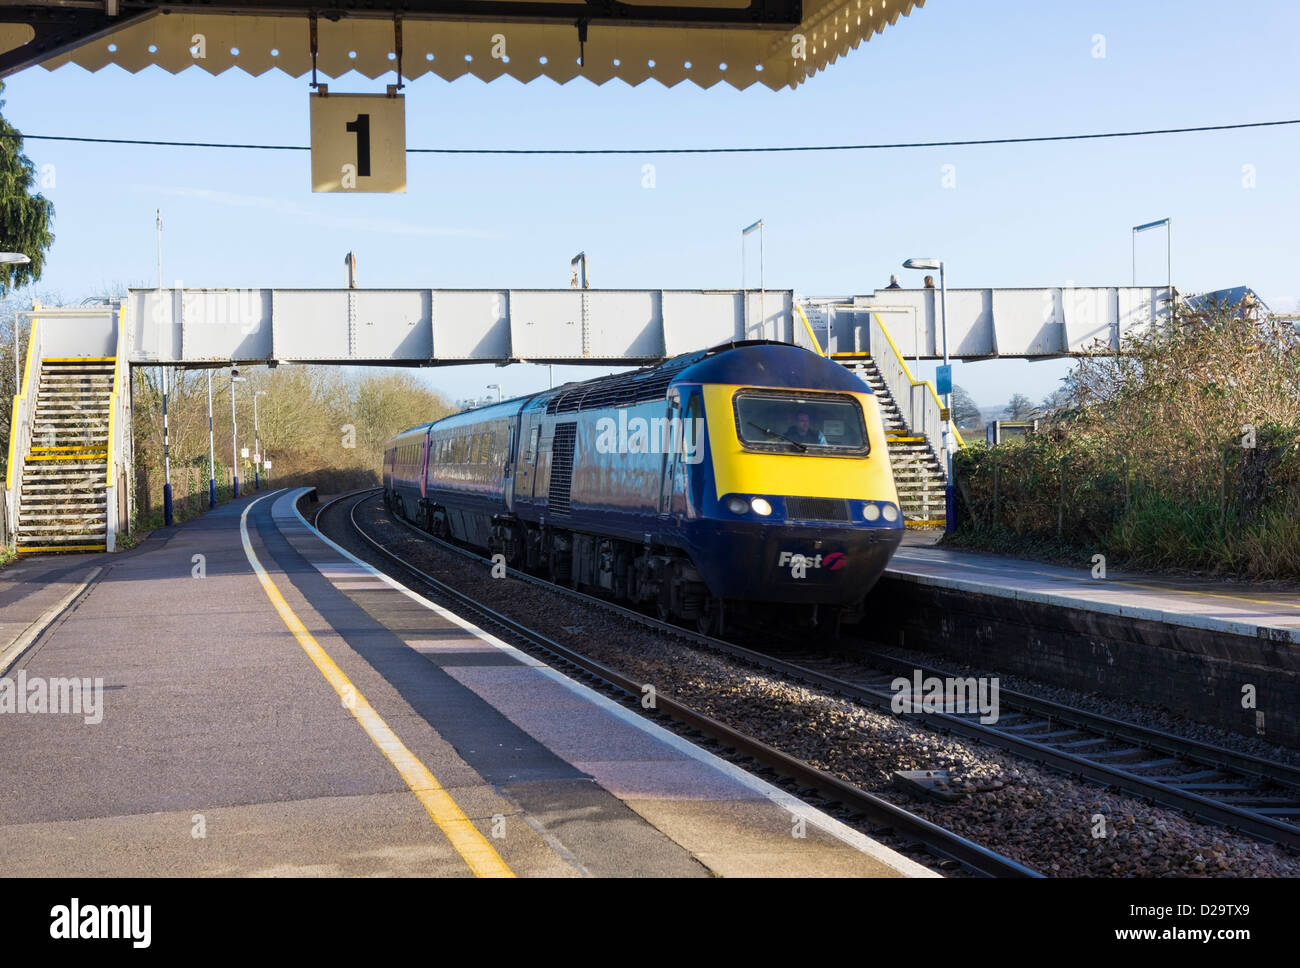 First Great Western train pulling into Castle Cary train station, Somerset, UK - Stock Image